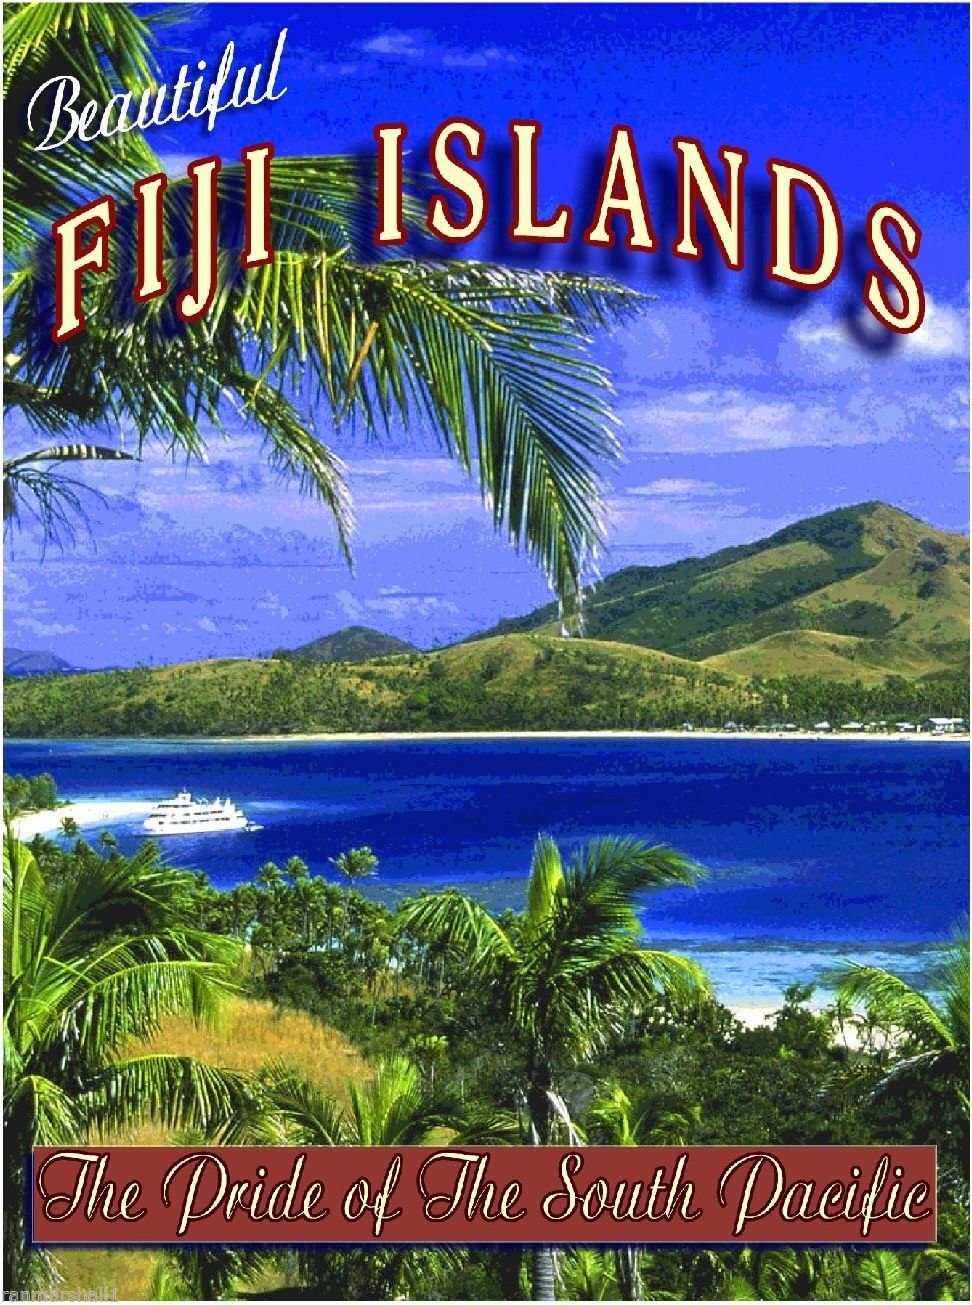 MAGNET Fiji Islands Island South Pacific Beach Ocean Travel Advertisement Art Magnet